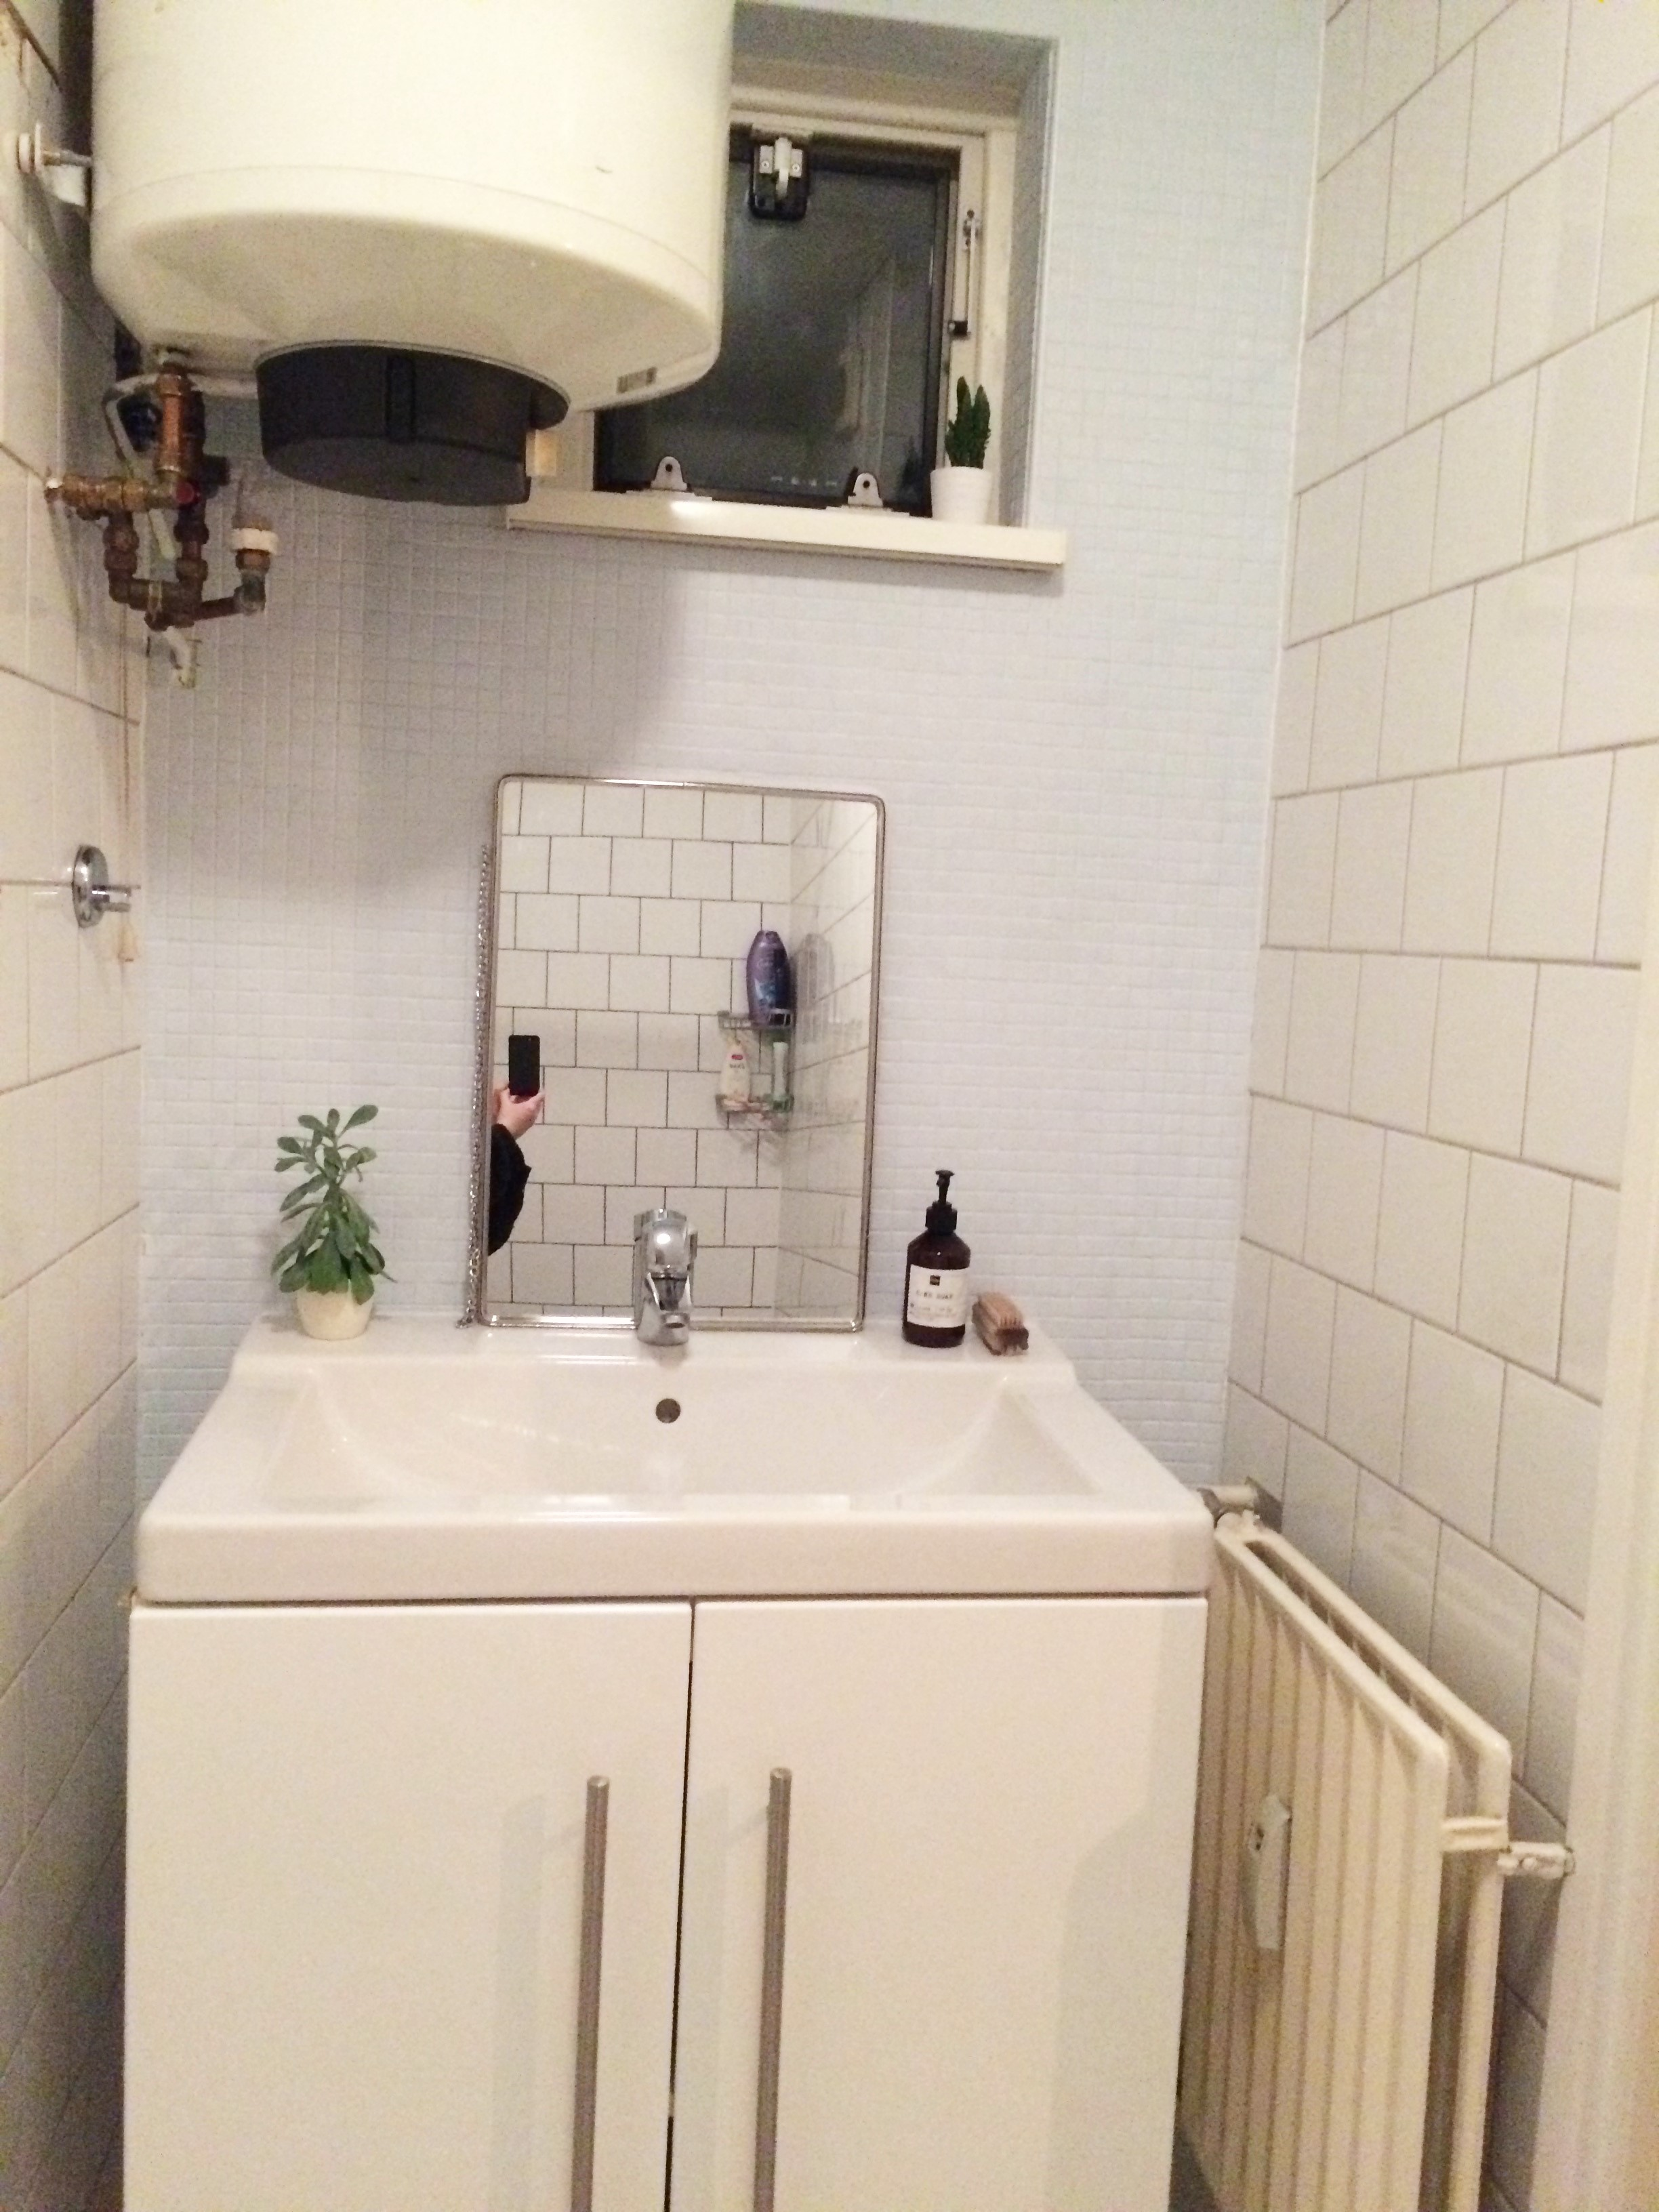 April recap: bathroom renovation - http://weirdatheart.com/april-recap/